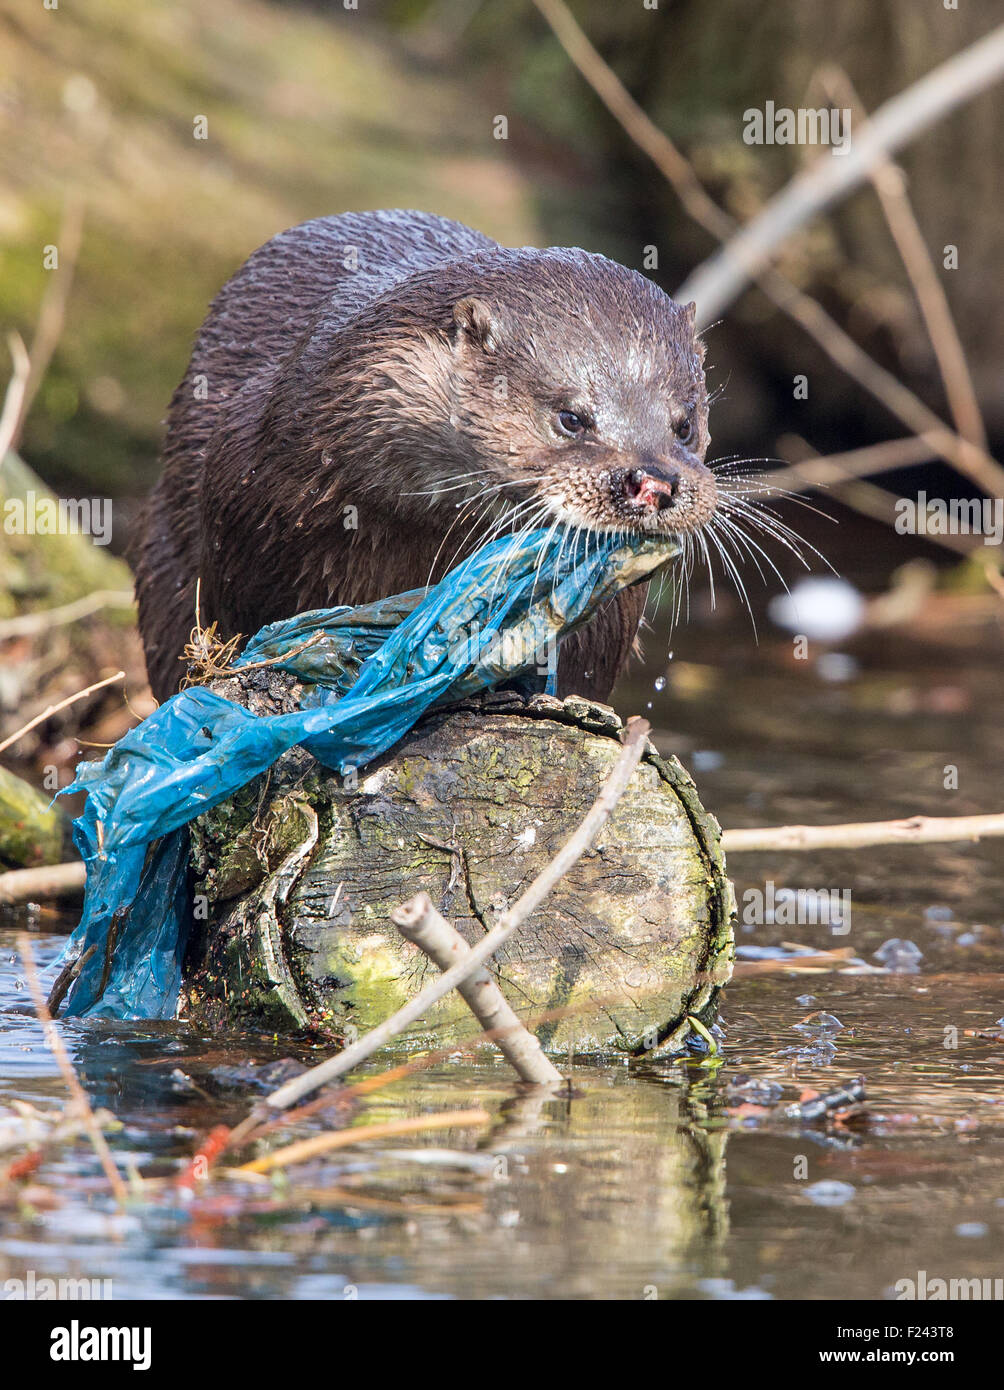 European Otter (Lutra lutra)  with rubbish in a polluted river - Stock Image